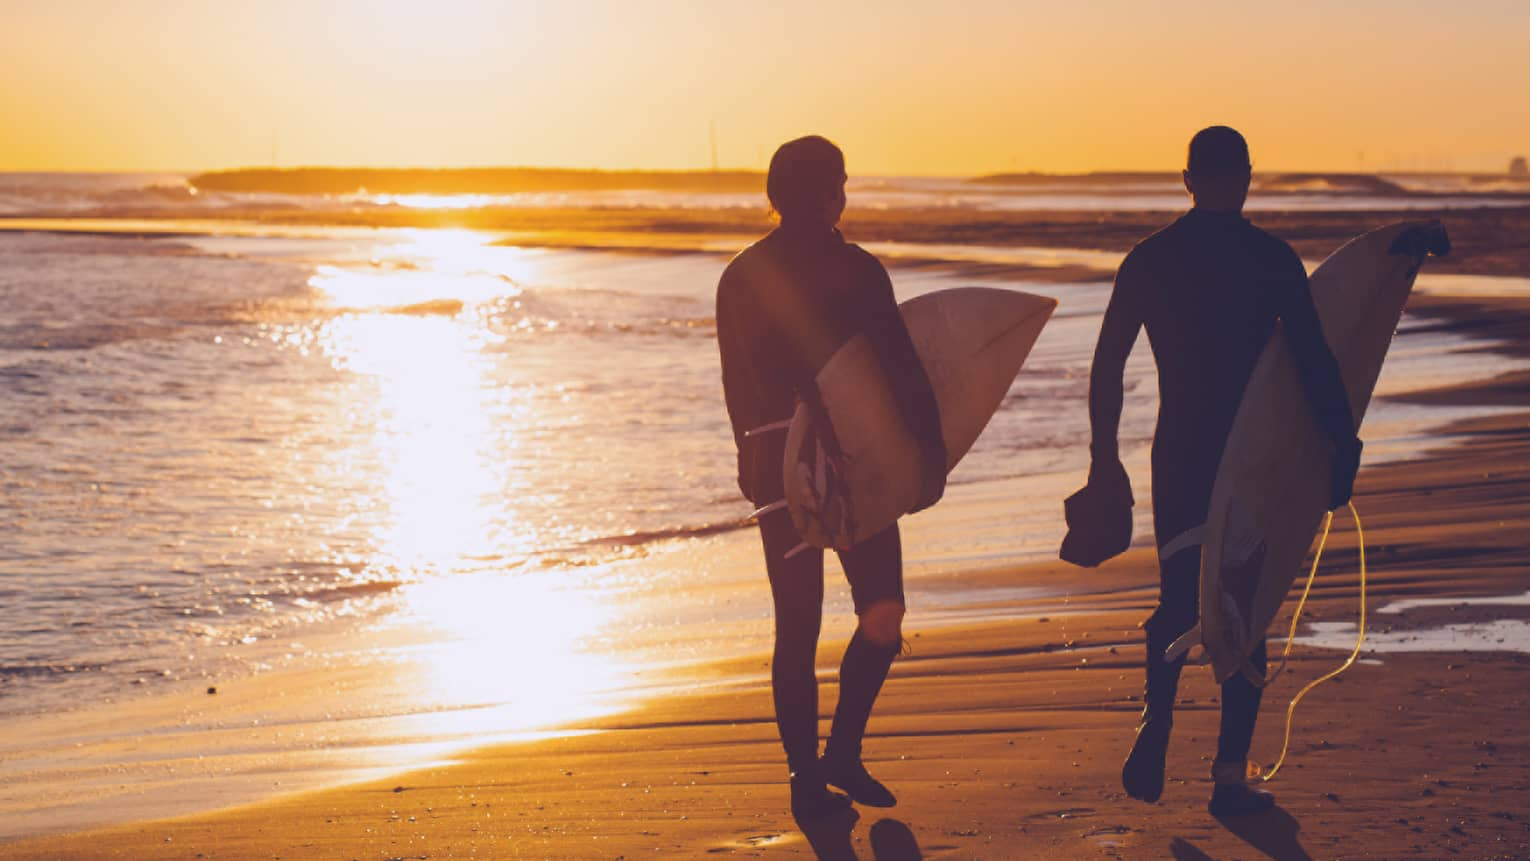 Silhouettes of two people carrying surfboards across beach at sunset